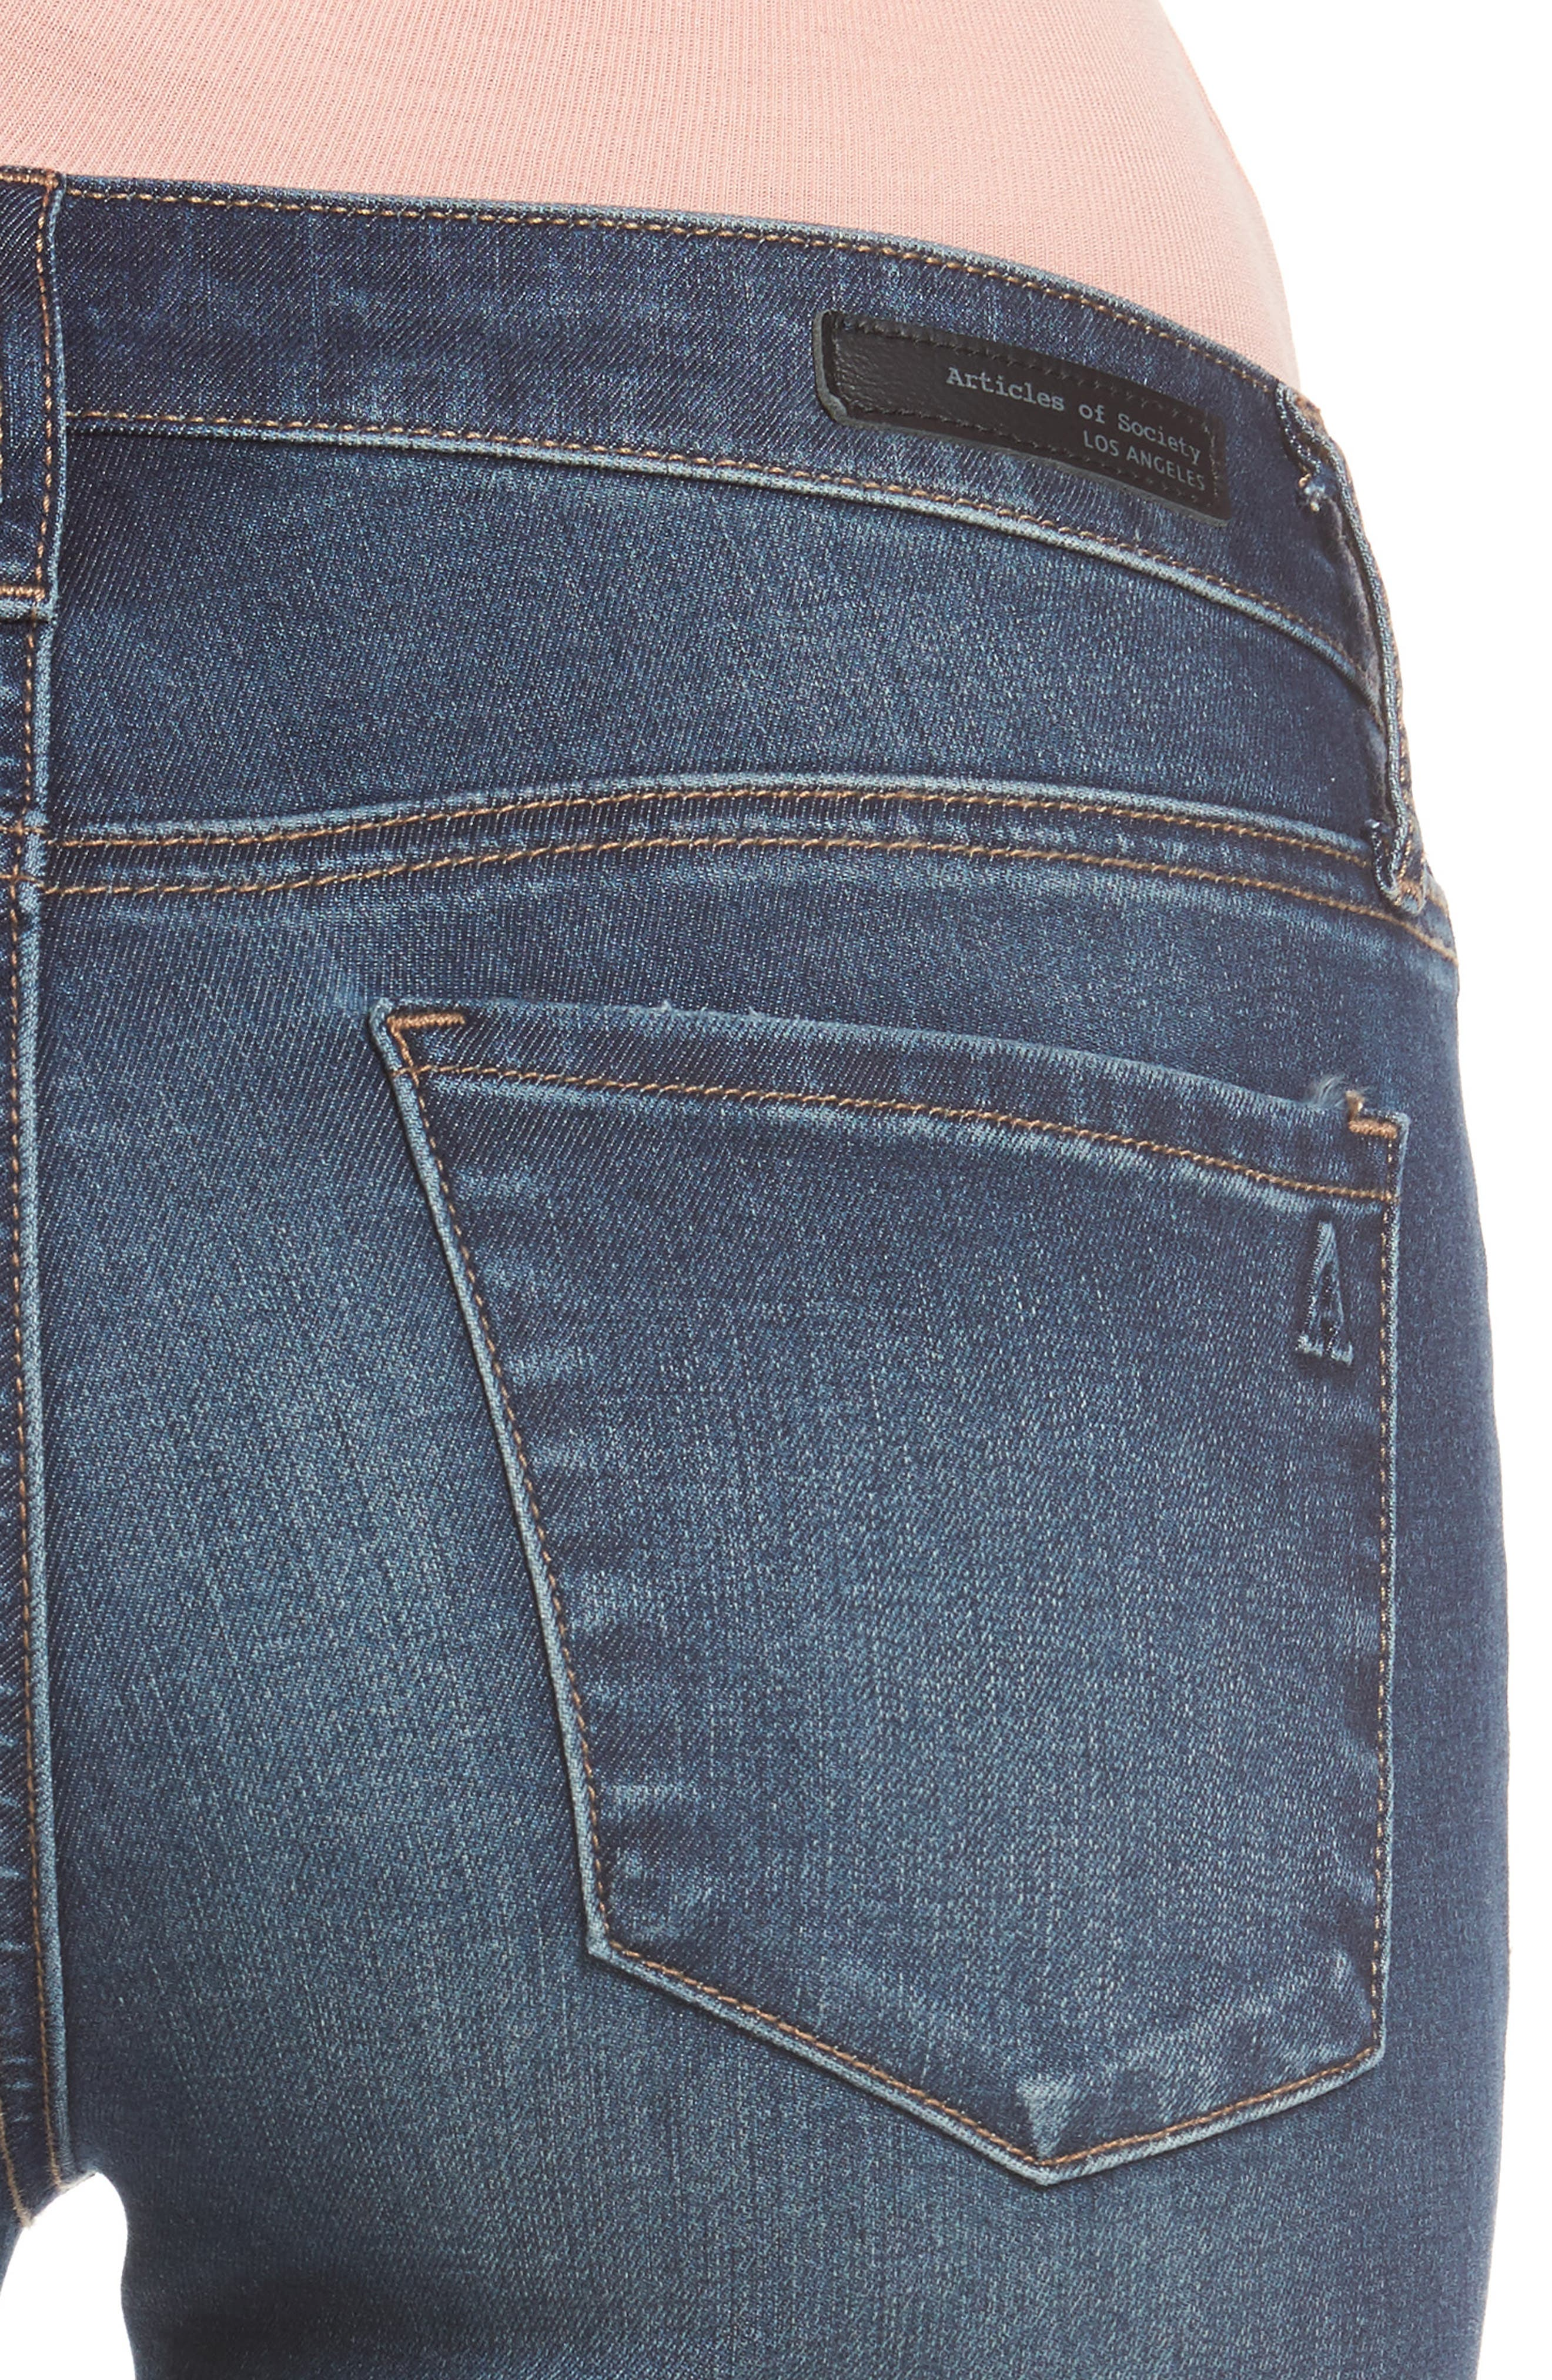 Alternate Image 4  - Articles of Society Melody Skinny Jeans (Blue Ridge)